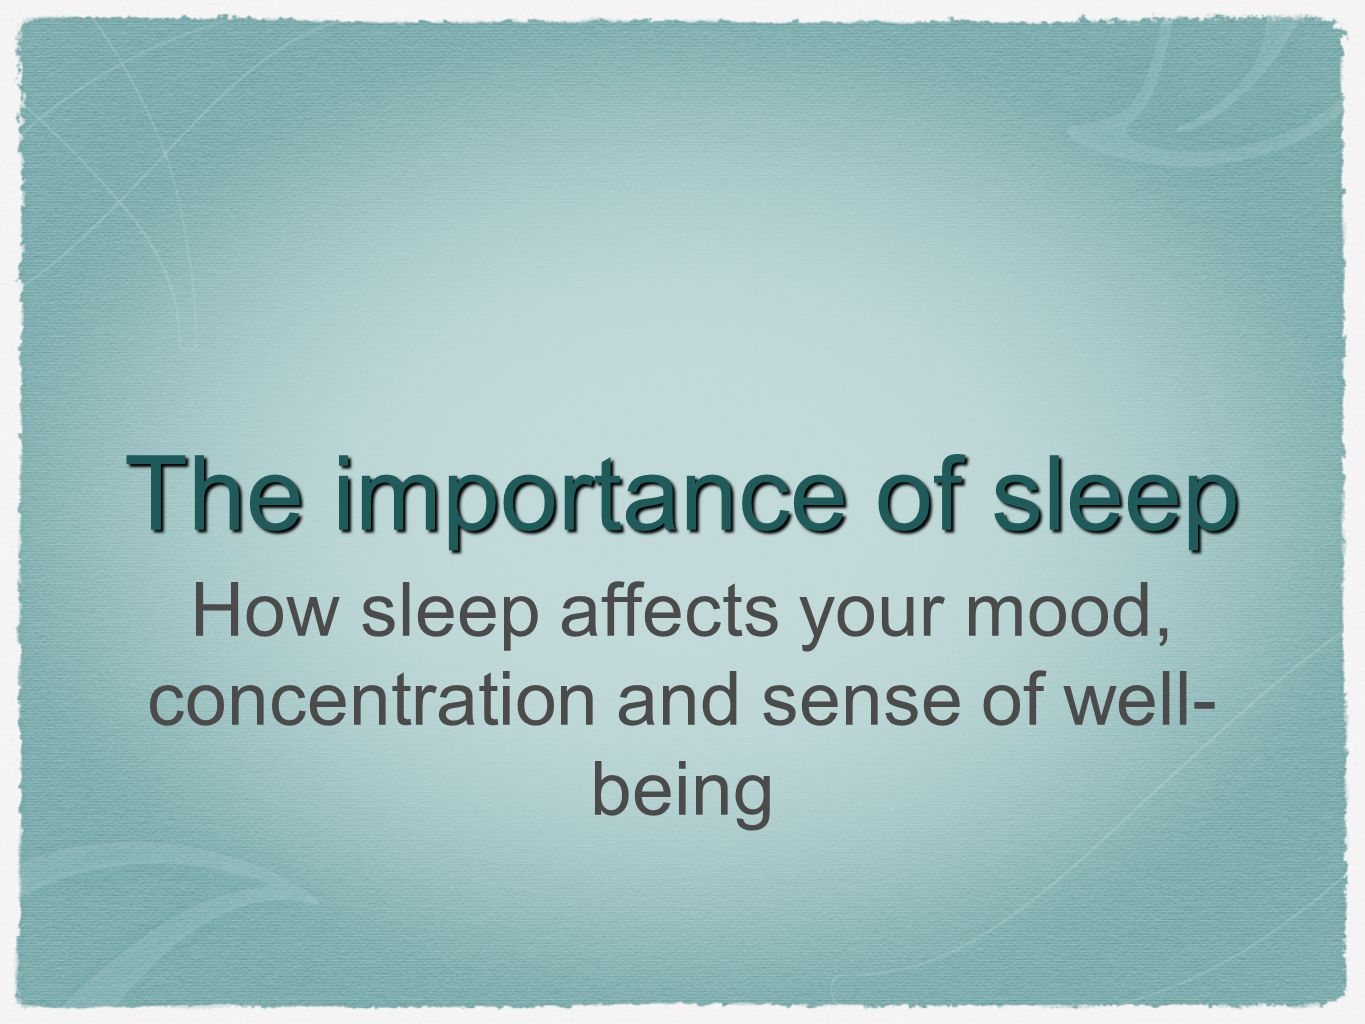 The importance of sleep How sleep affects your mood, concentration and sense of well- being